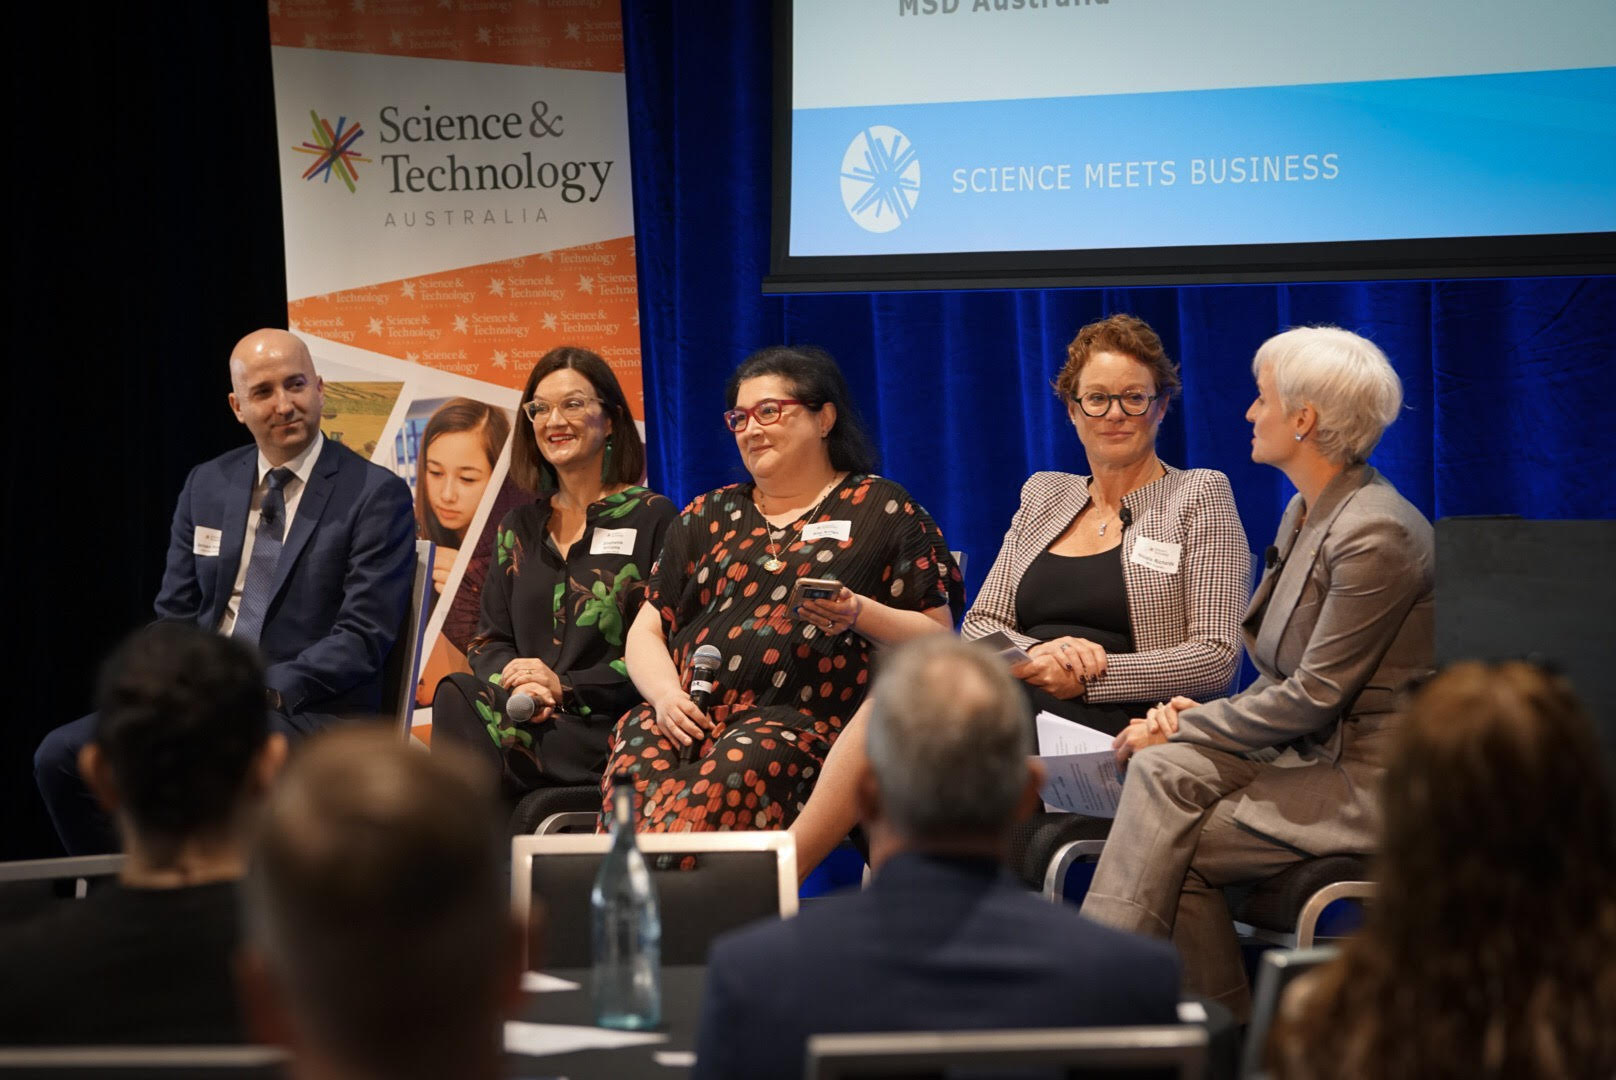 pannellists discussing the next big thing in high tech at Science meets Business